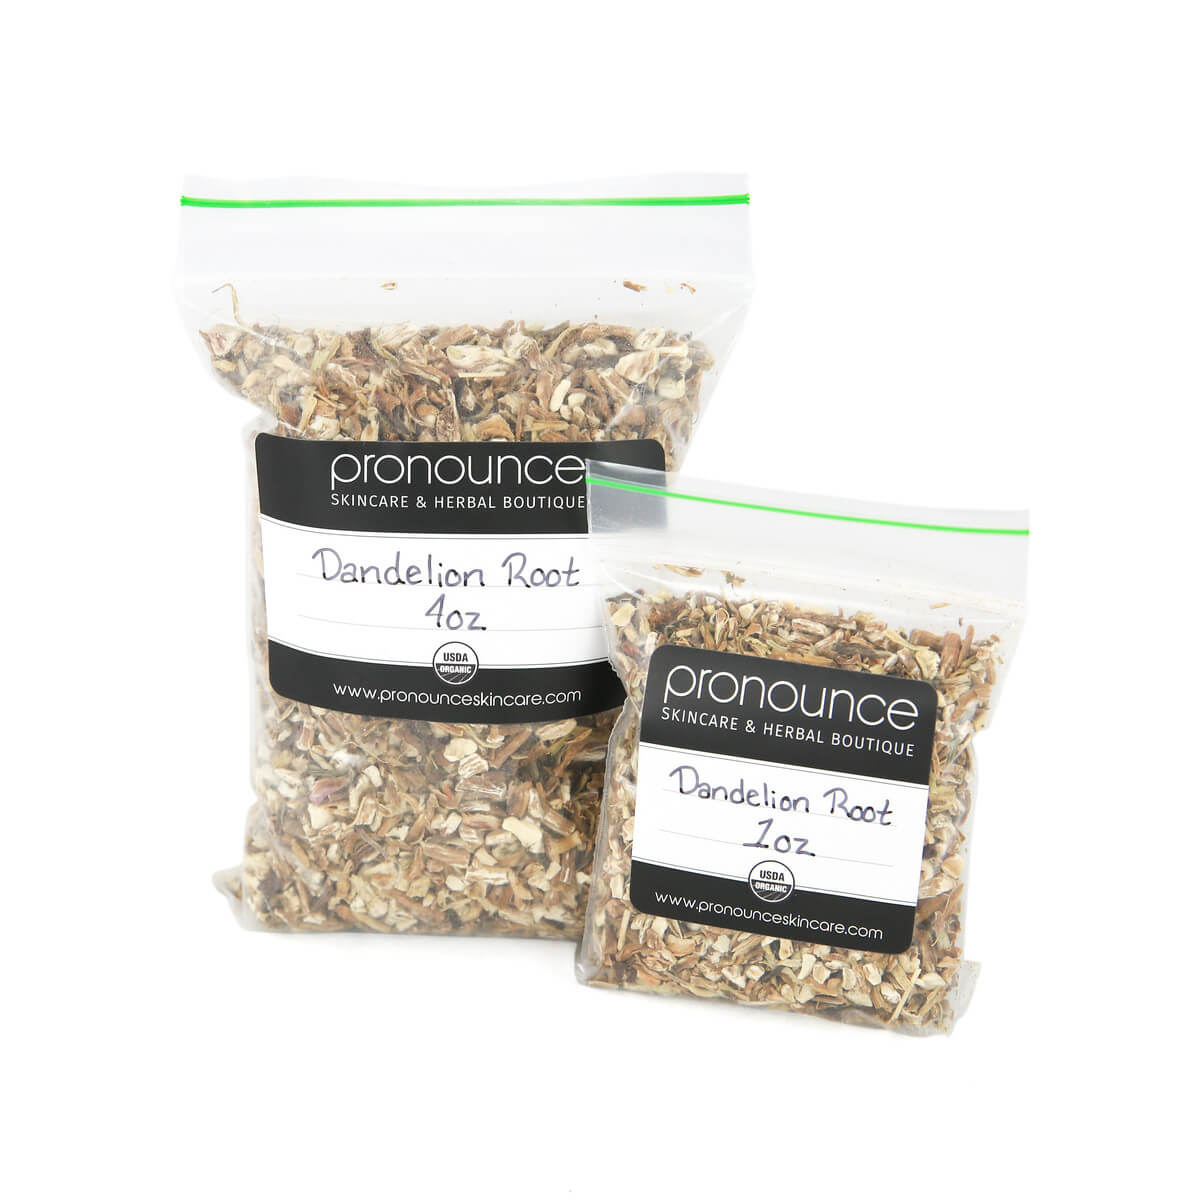 Certified Organic Dandelion Root 2 Sizes Pronounce Skincare & Herbal Boutique